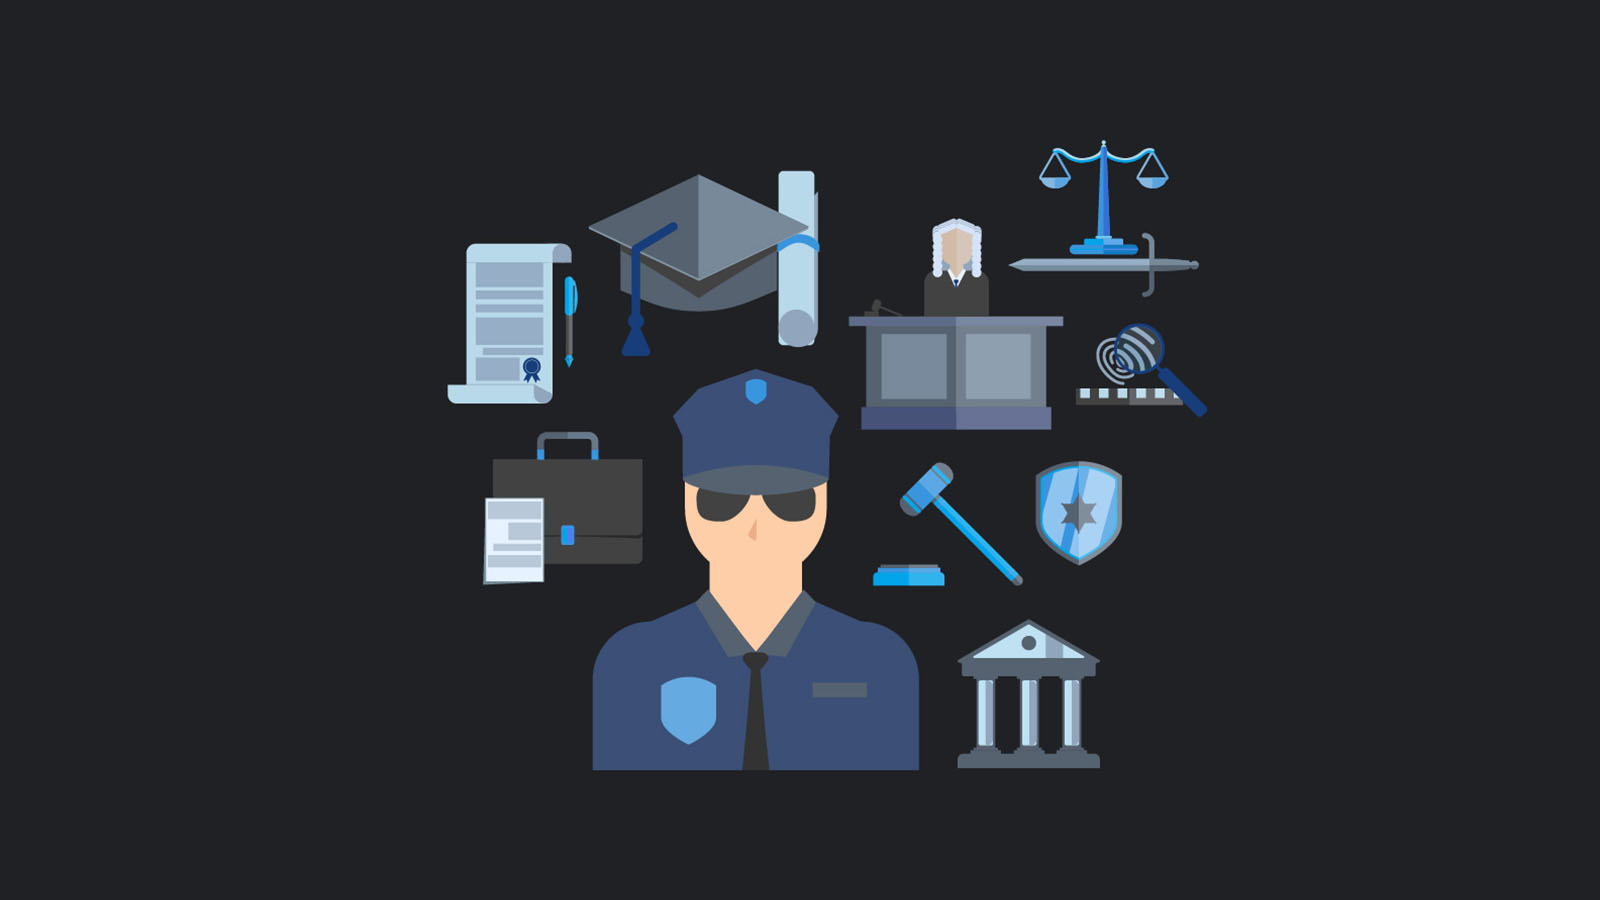 What Skills Do You Need For A Security Job In London?